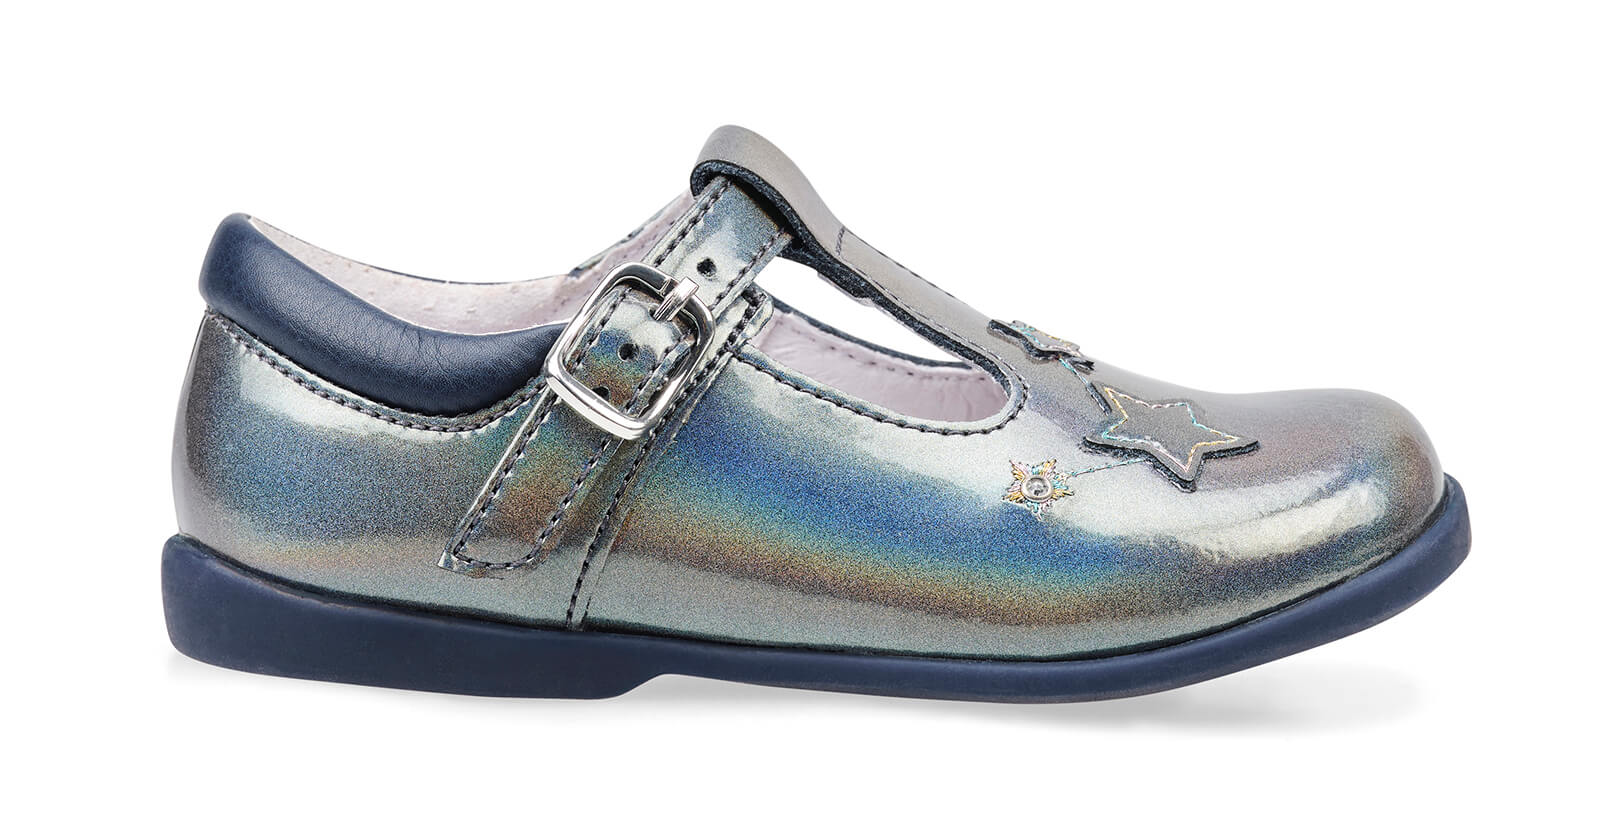 Star Gaze shoes